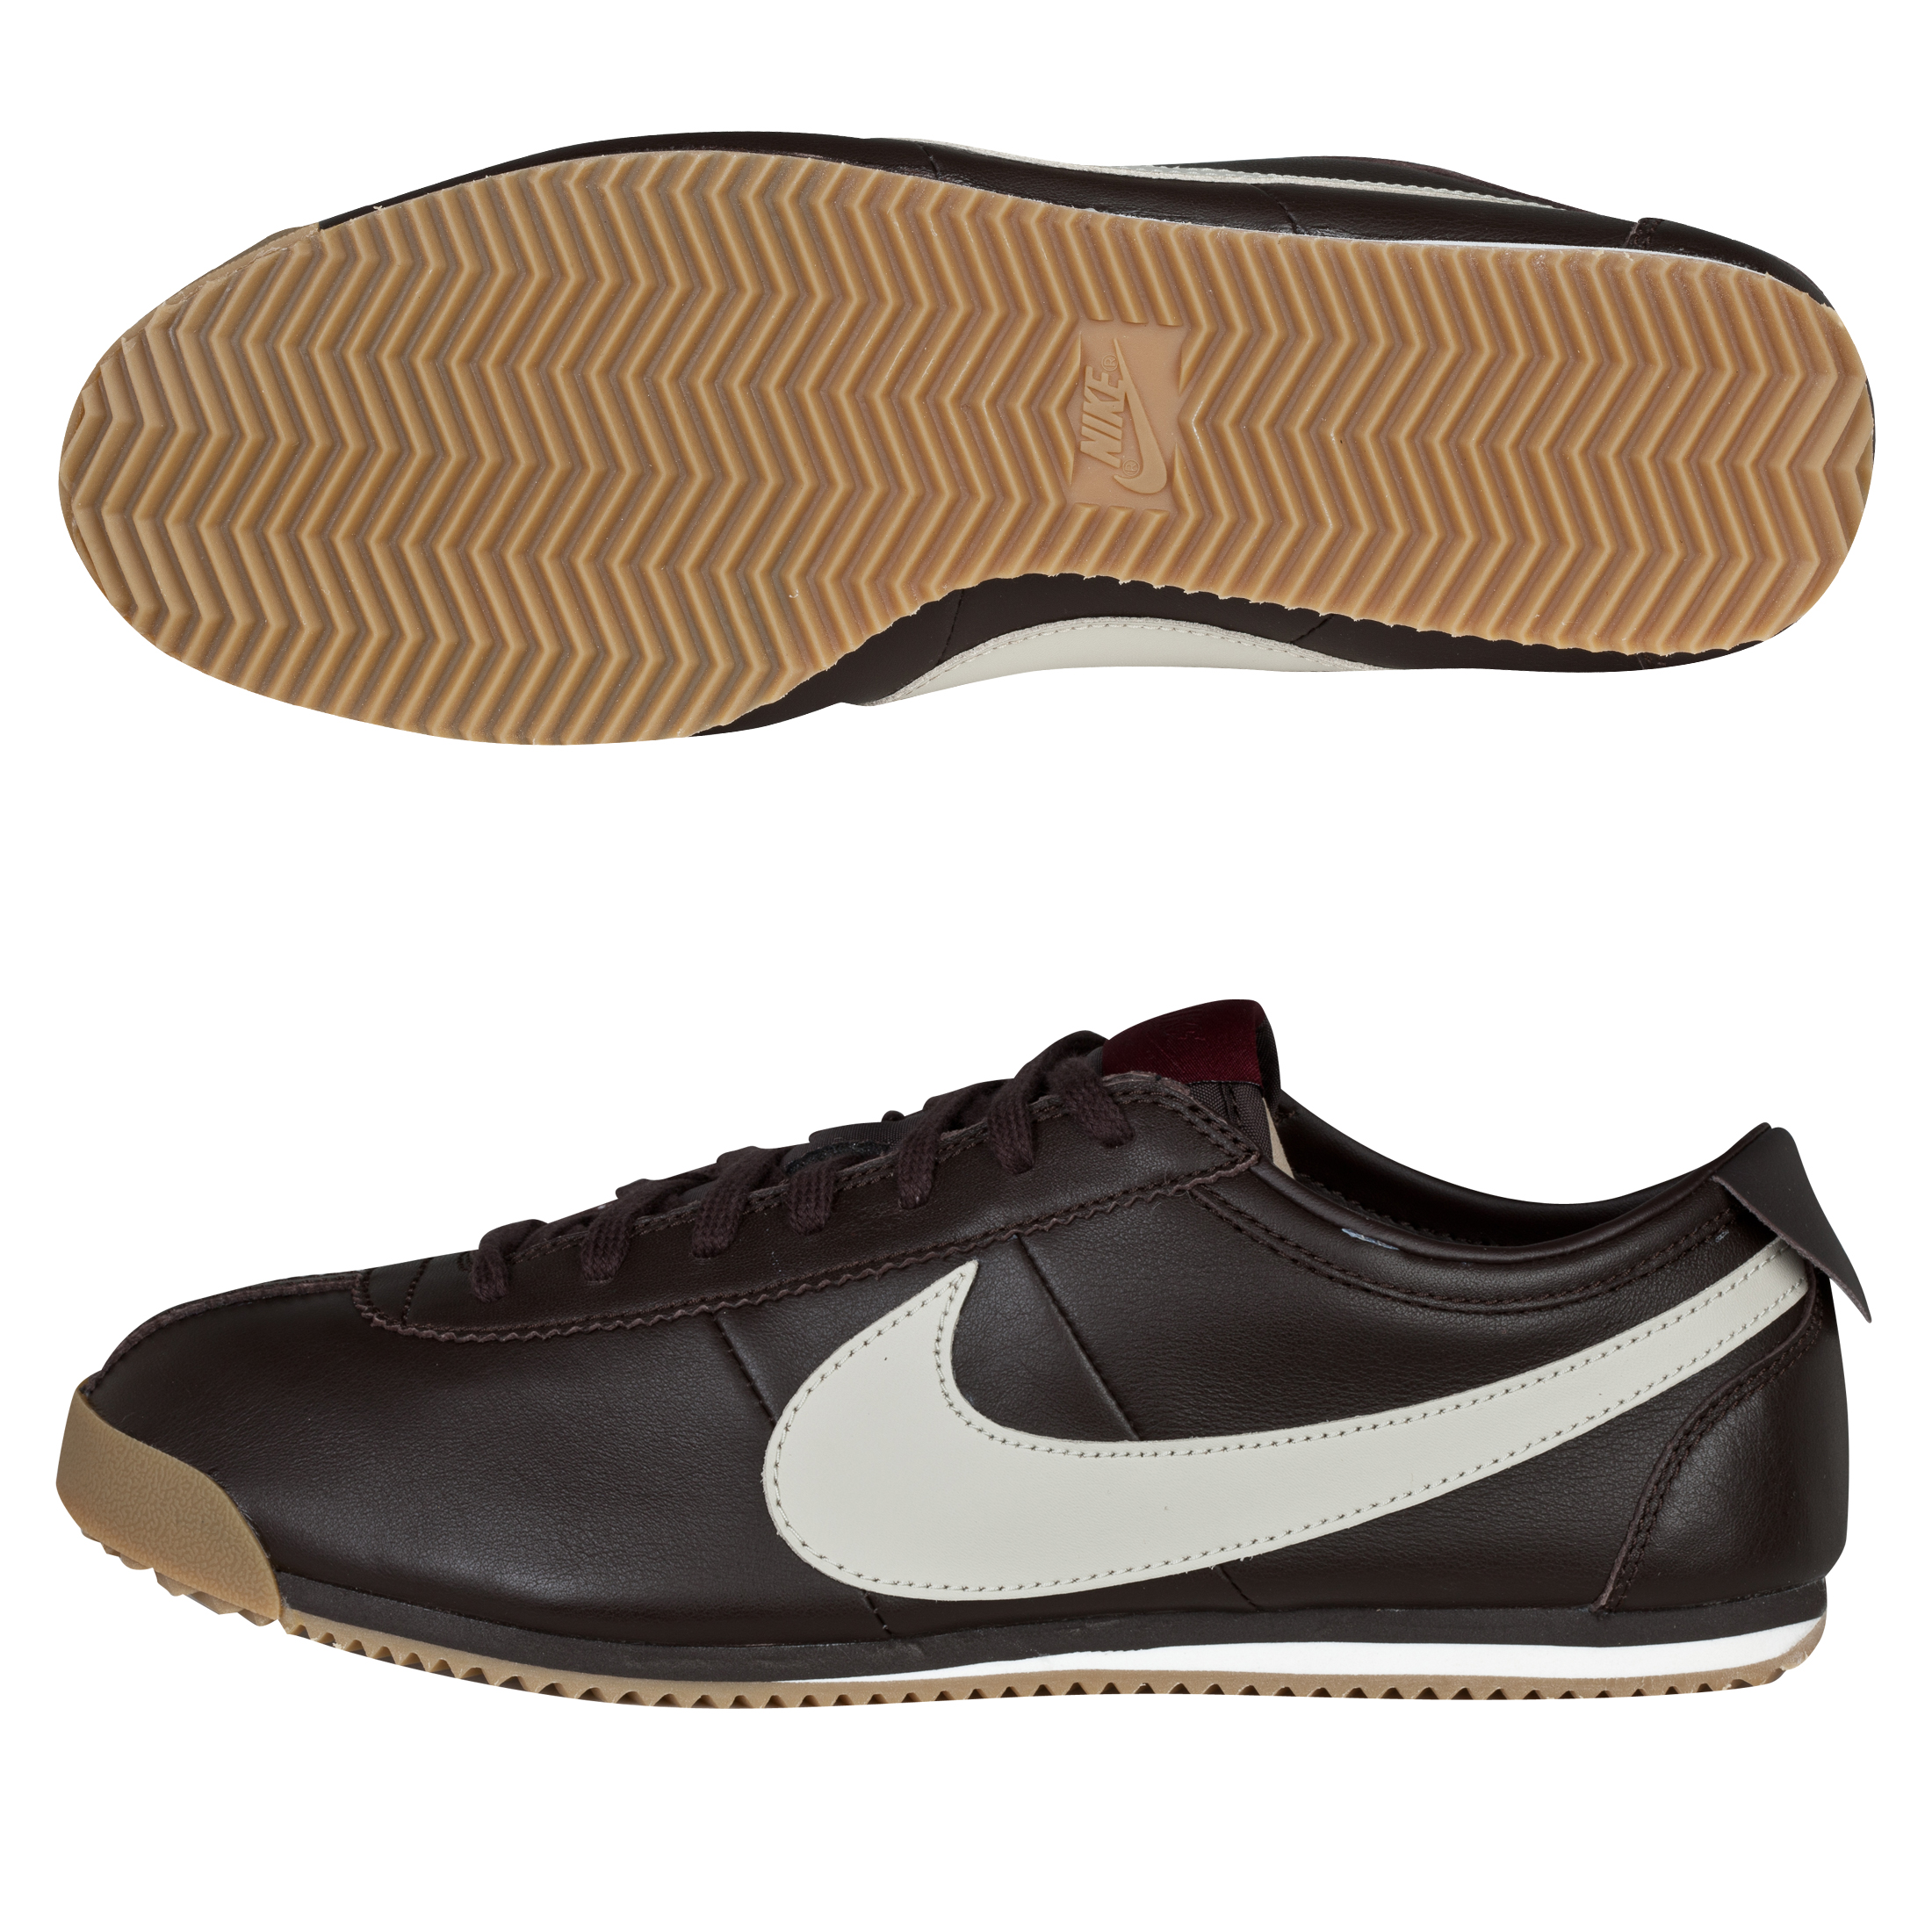 Nike Cortez Classic OG Trainers - Black Tea/Sandtrap/Dark Team Red